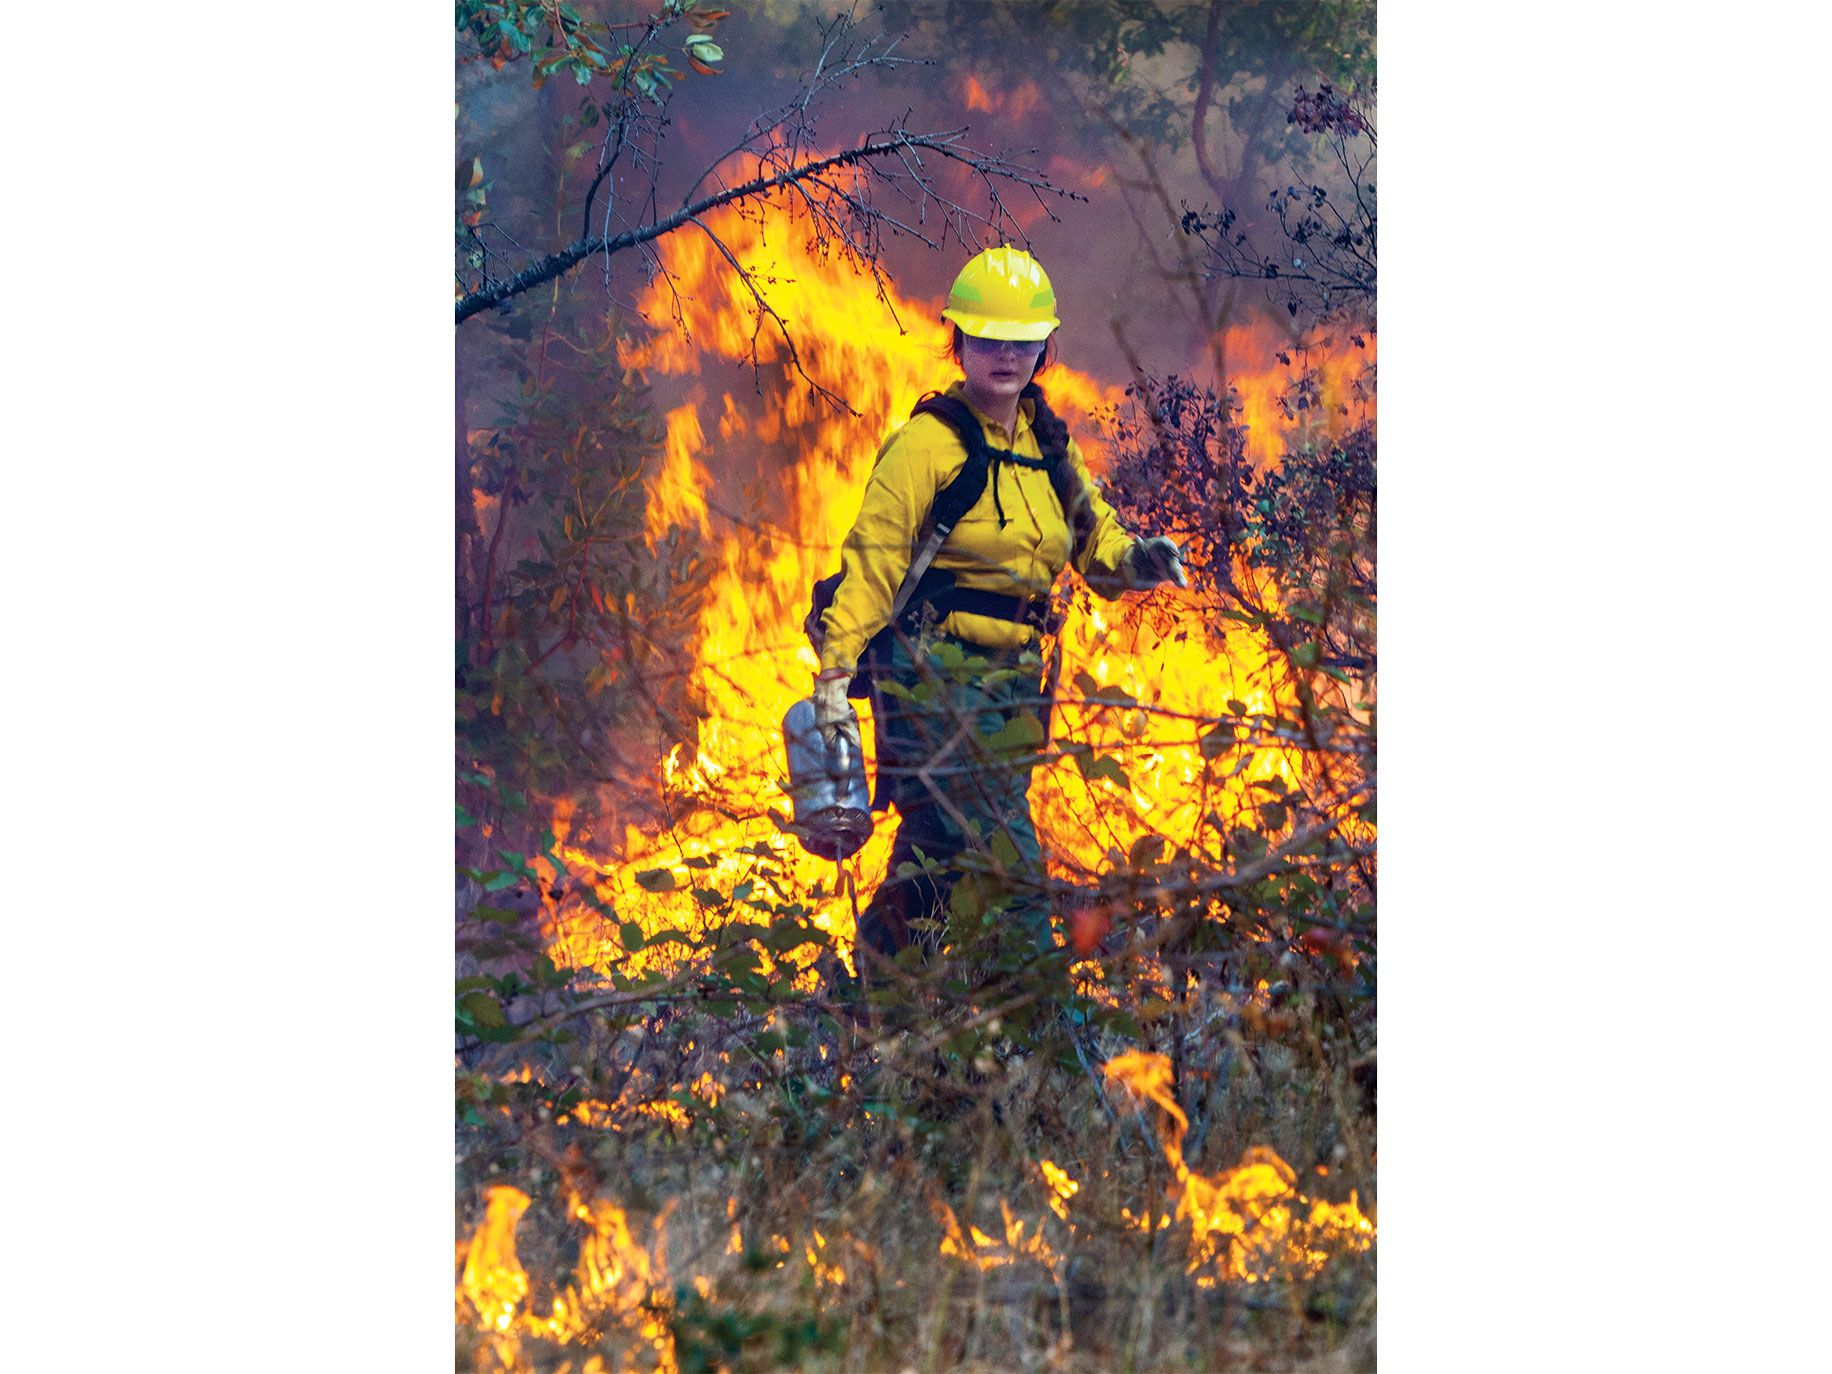 Lena Neuner, 25, participates in a controlled burn organized by the Klamath River Prescribed Fire Training Exchange (TREX) last October.